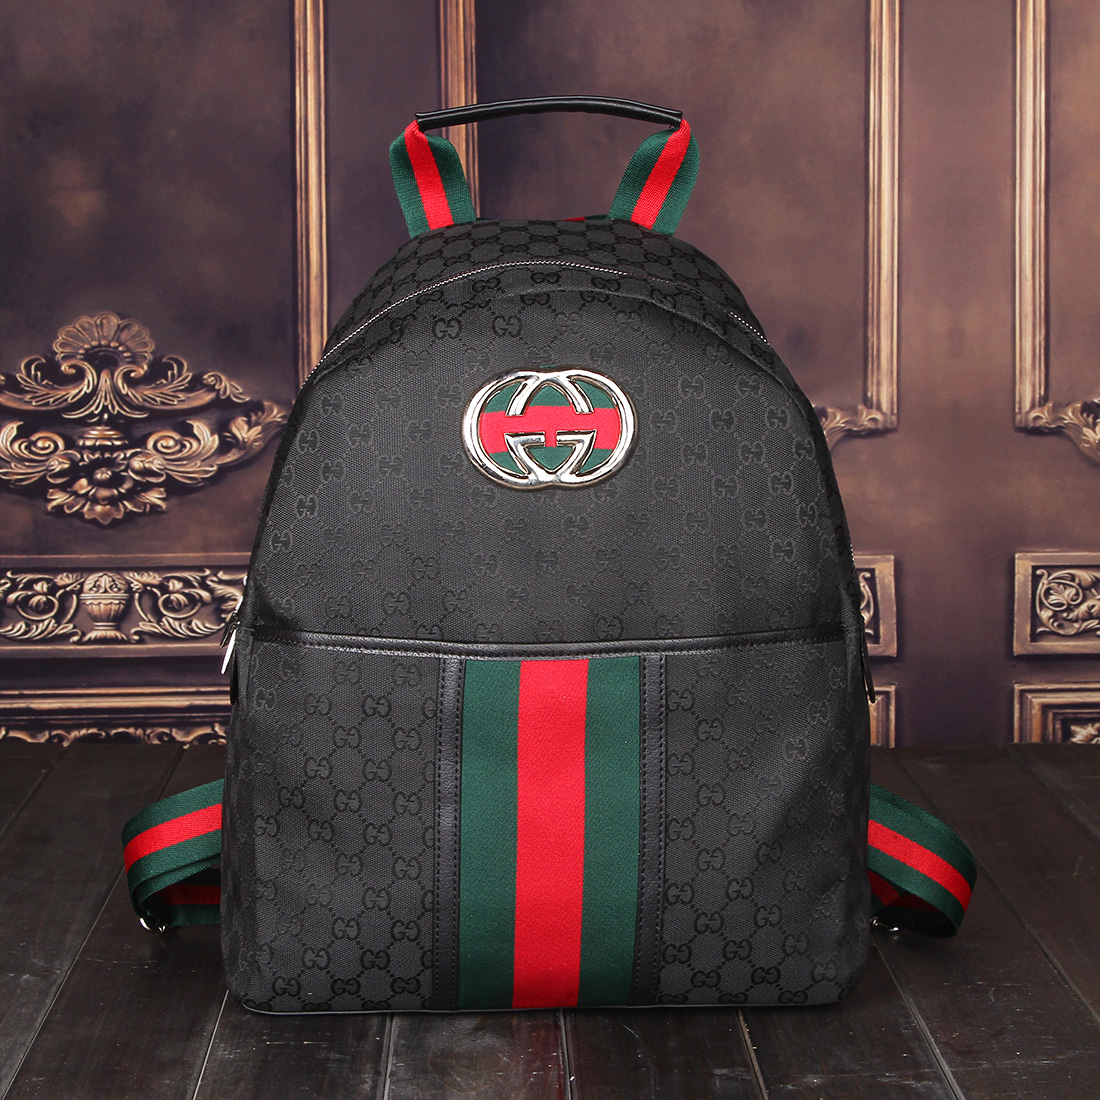 gucci book bags for men. gucci book bags for men